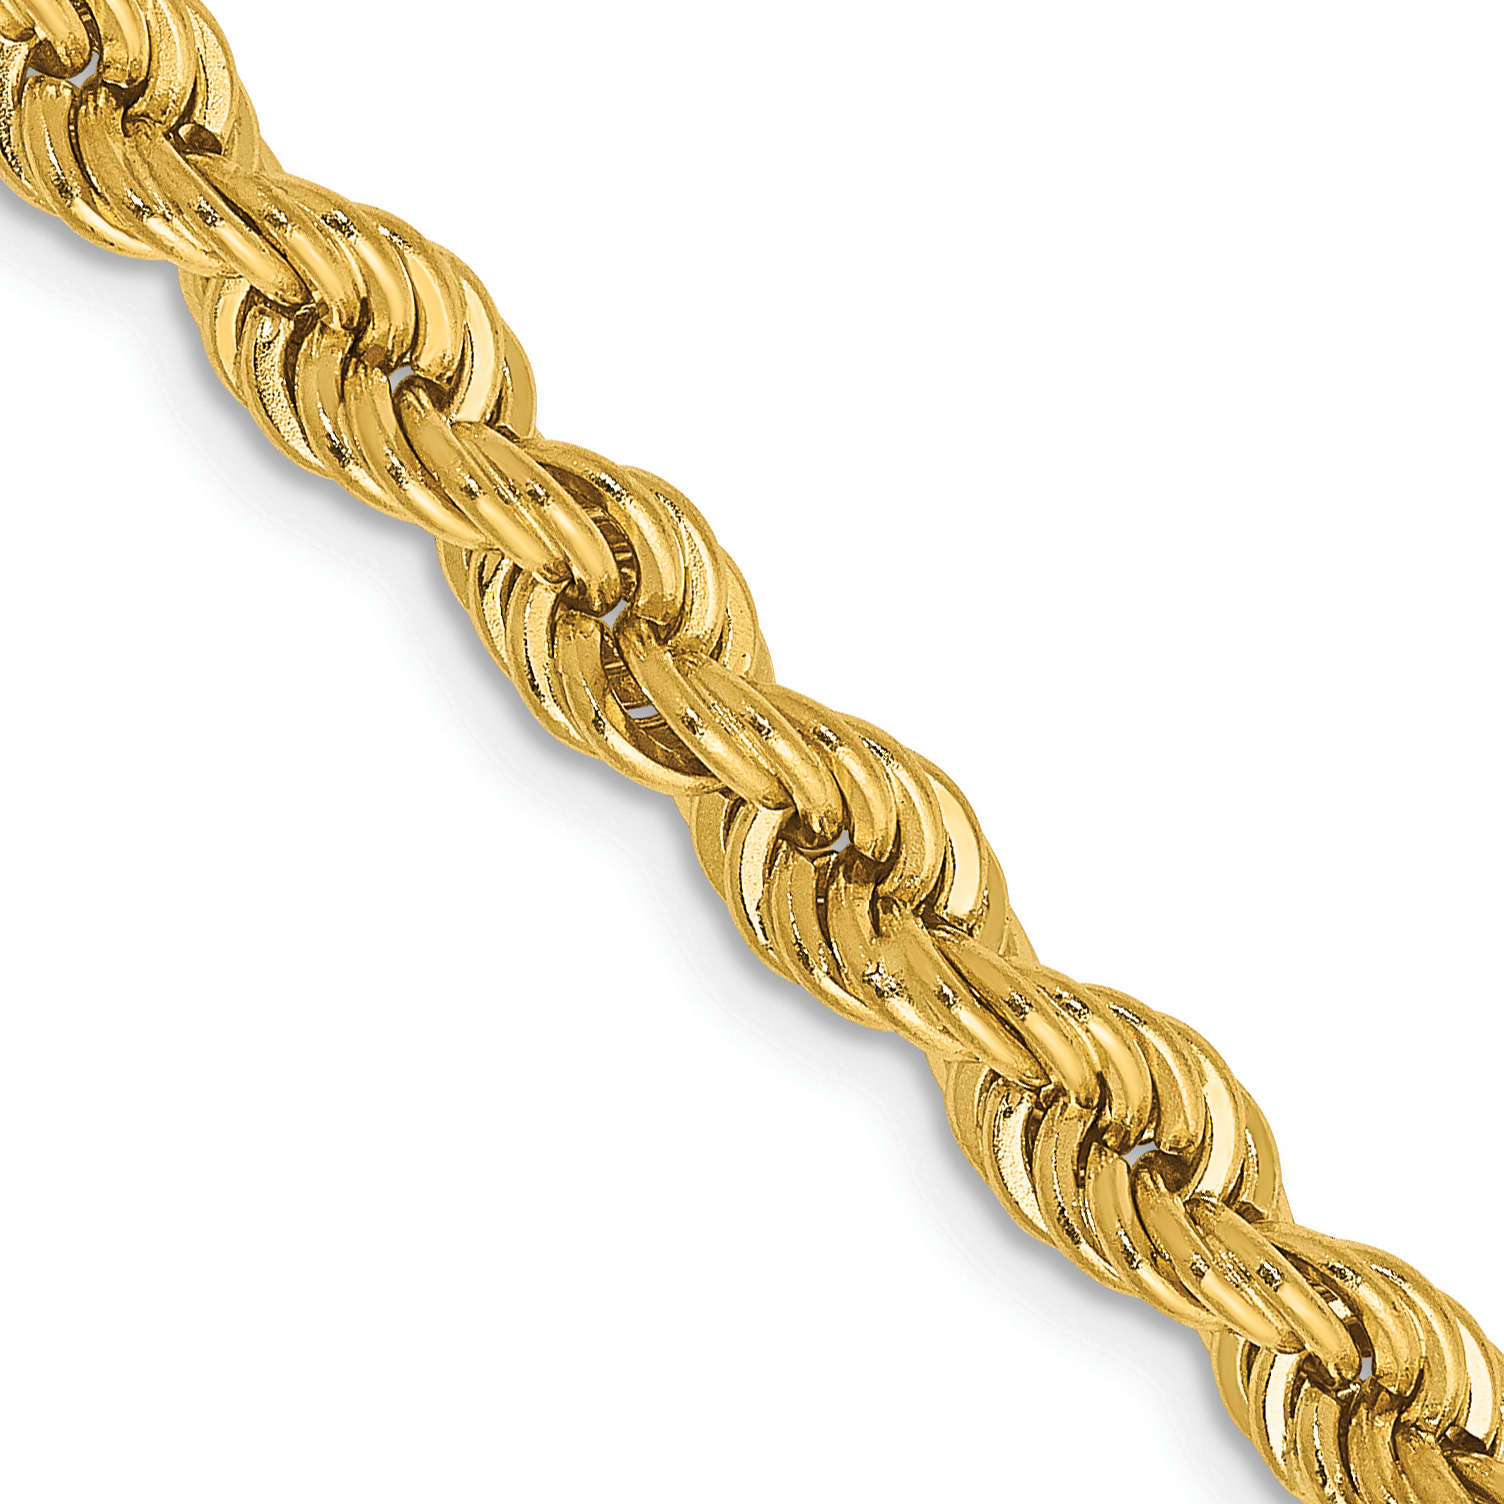 14k 18 Inch 5mm Handmade Regular Rope Chain